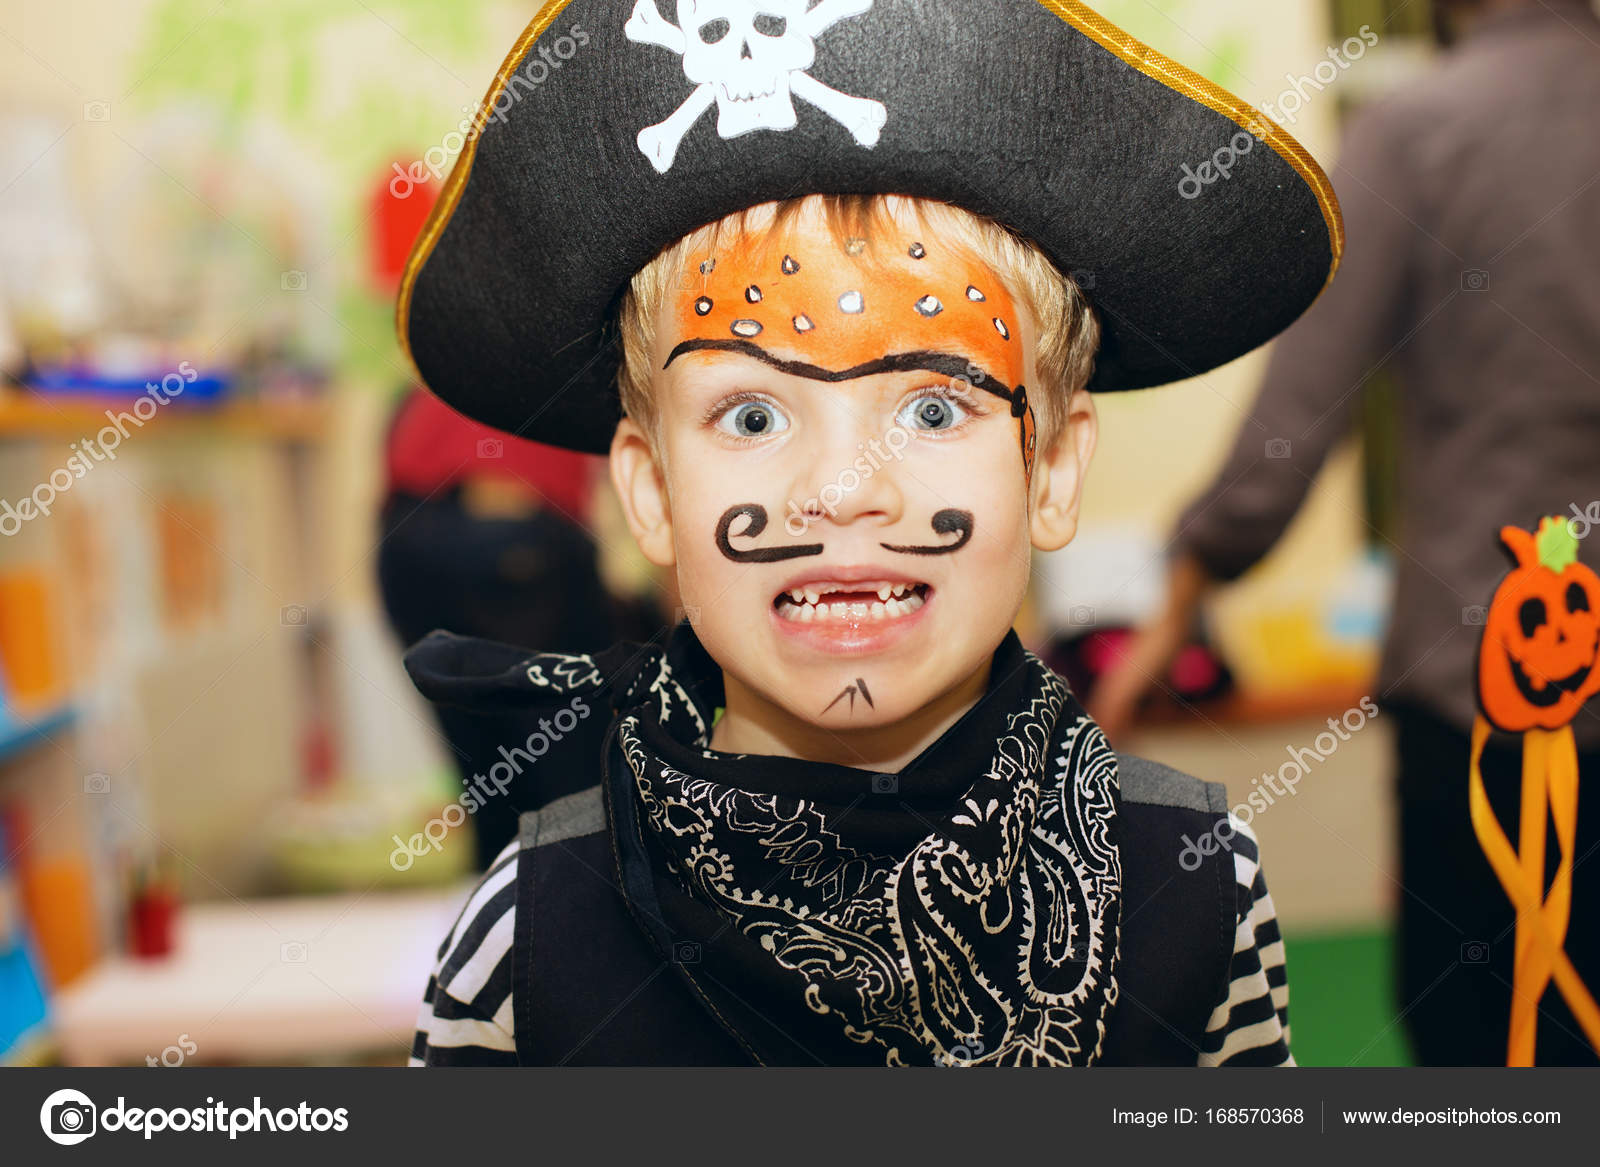 Halloween Makeup For Kids Boy.Pirate Makeup Kids Halloween Party Little Boy Pirate